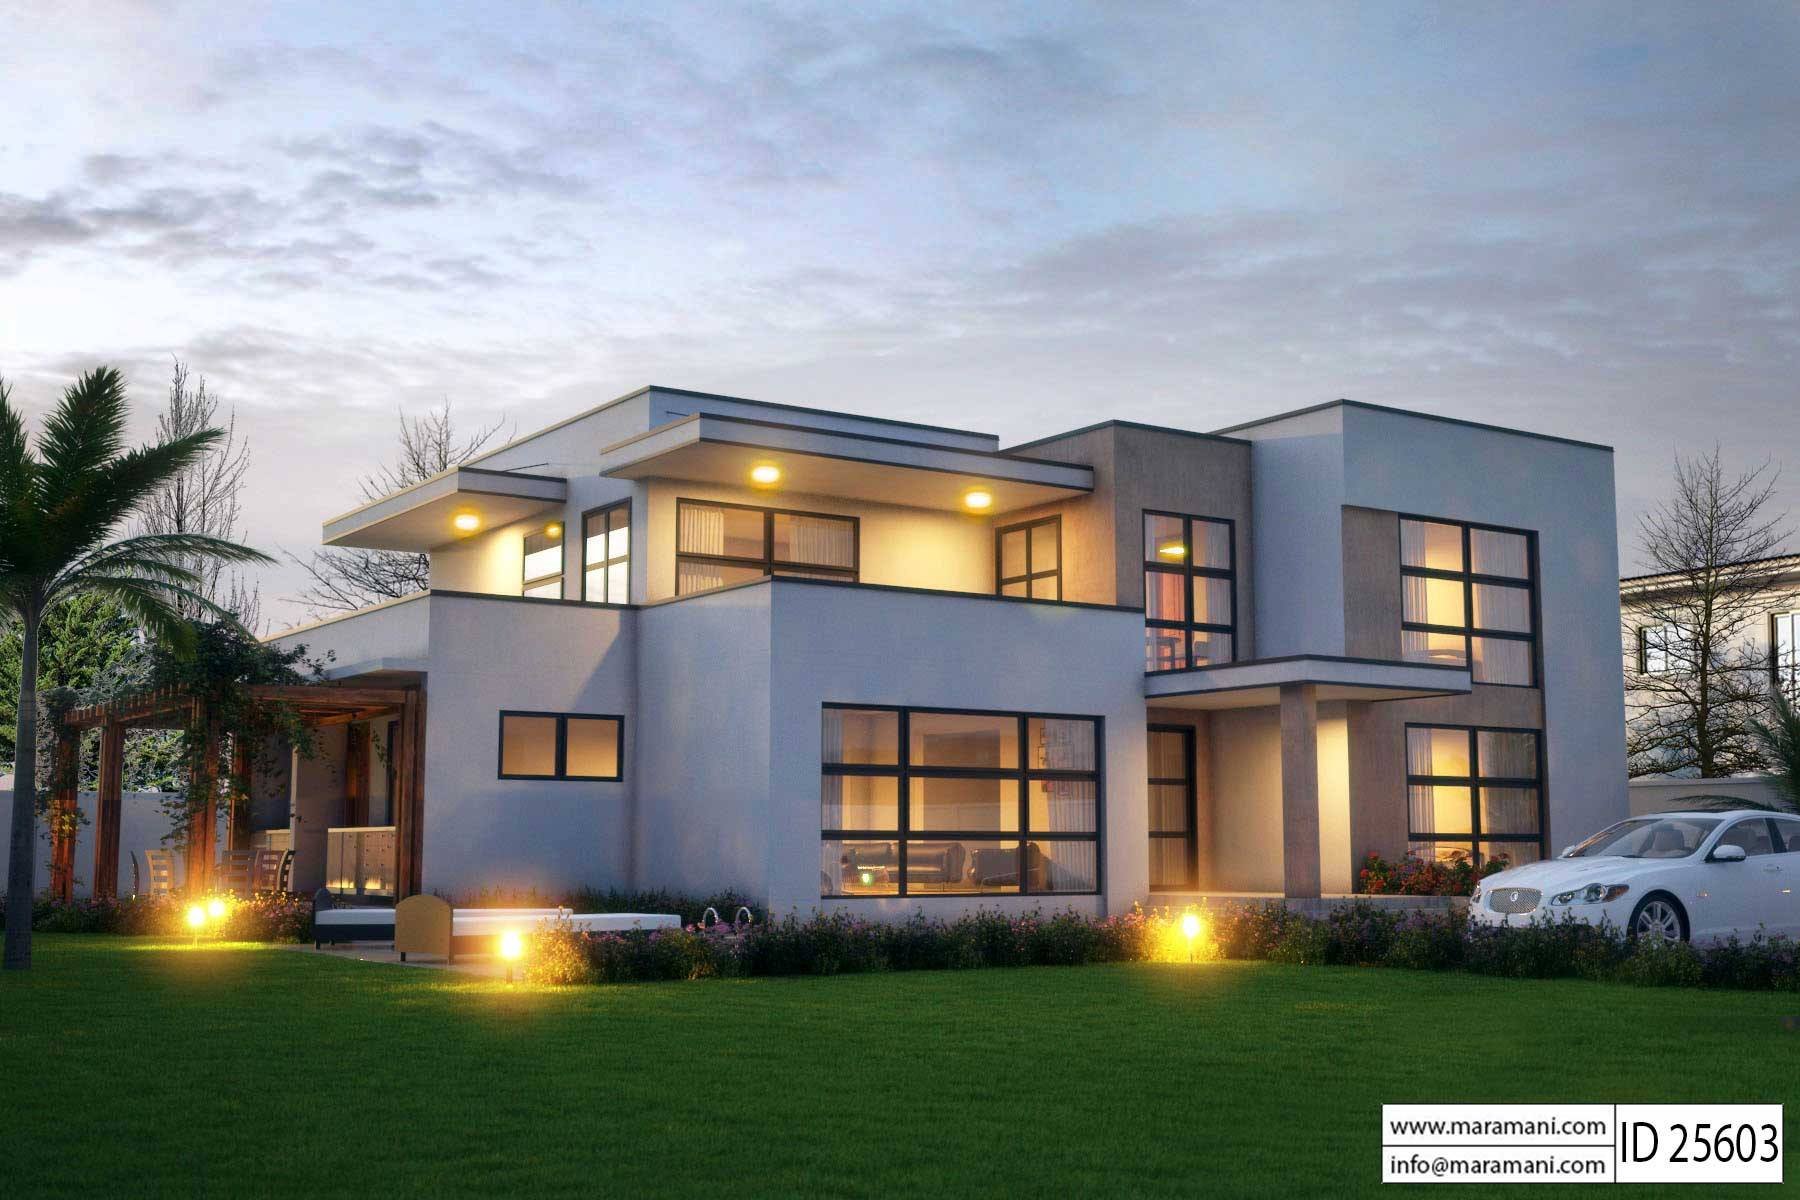 Modern 5 bedroom house design id 25603 floor plans by for House plans by design